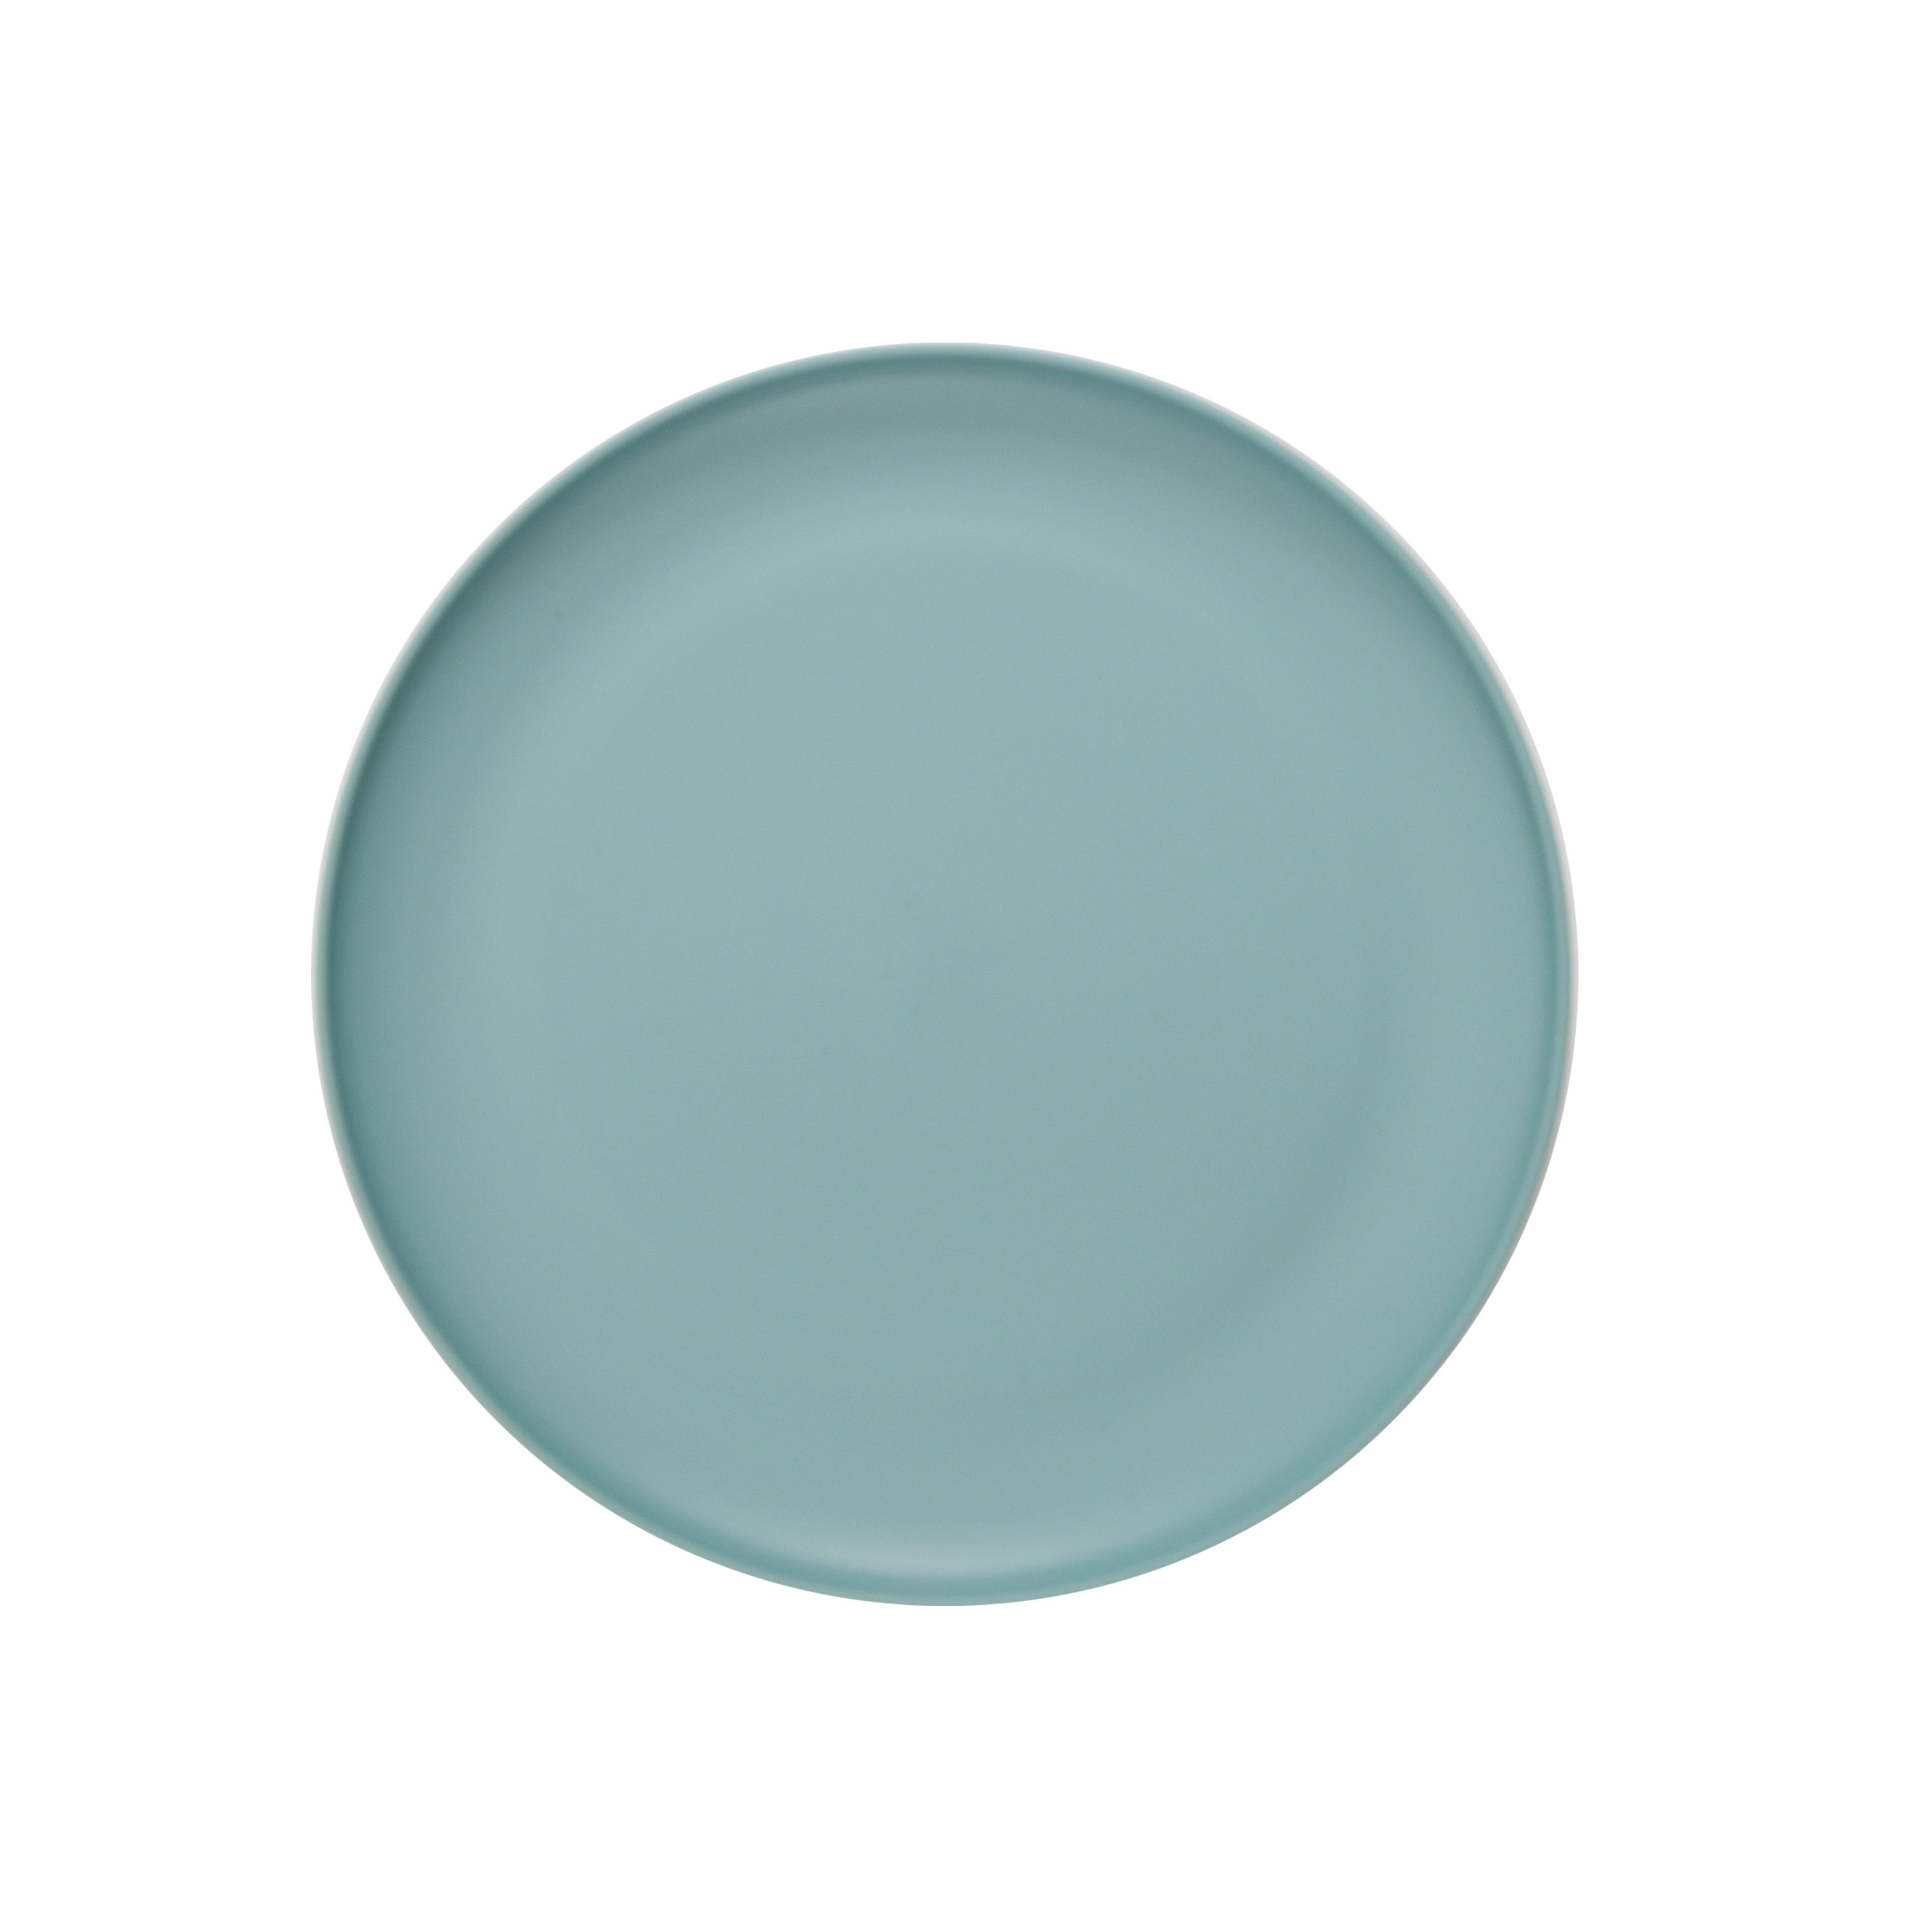 Mainstays Teal 10.5-Inch Plastic Plate